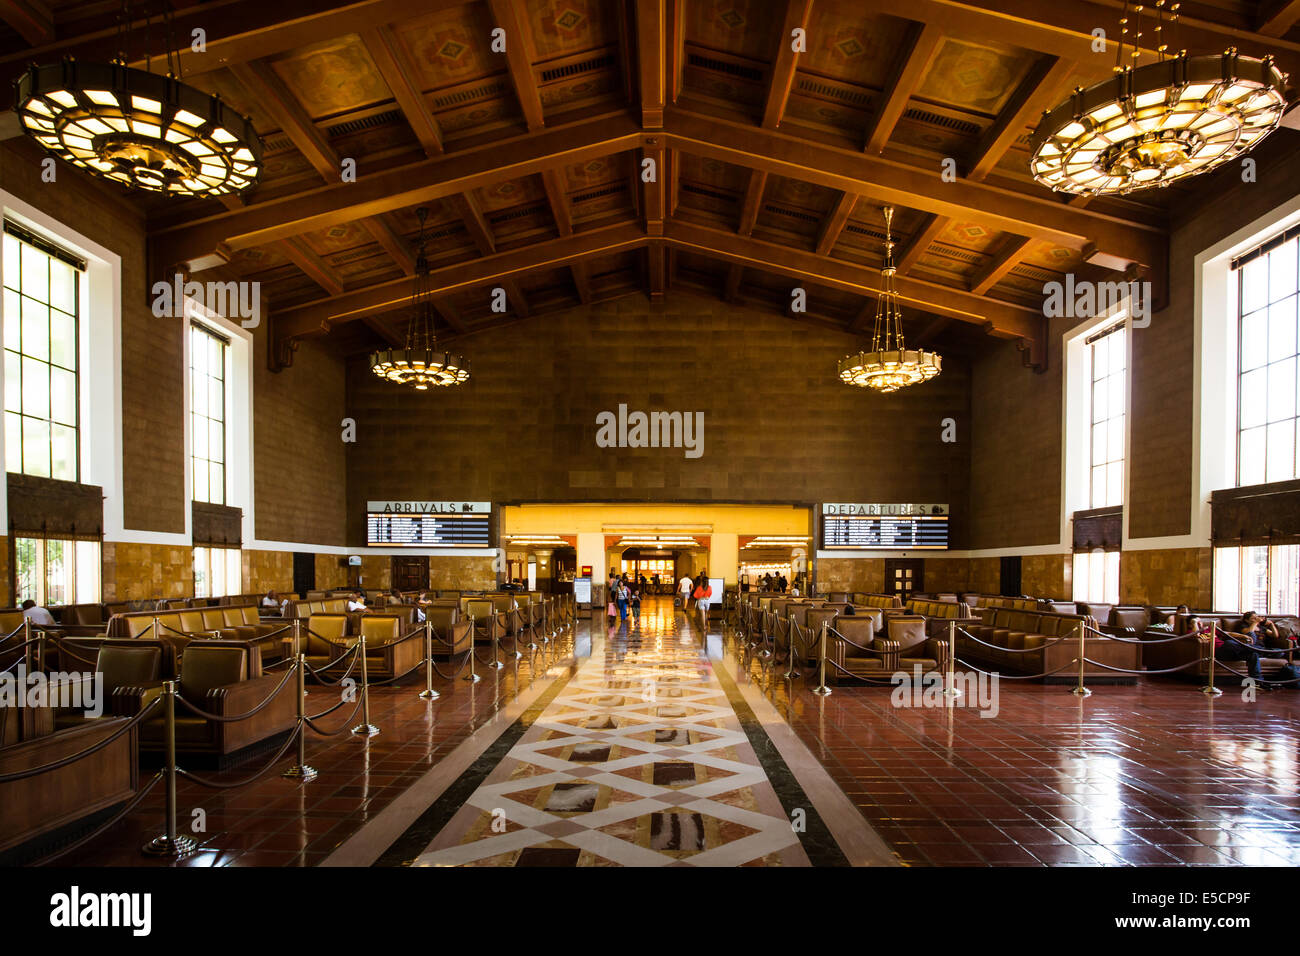 Art Deco Interieur : Die restaurierten art deco interieur der union station in los